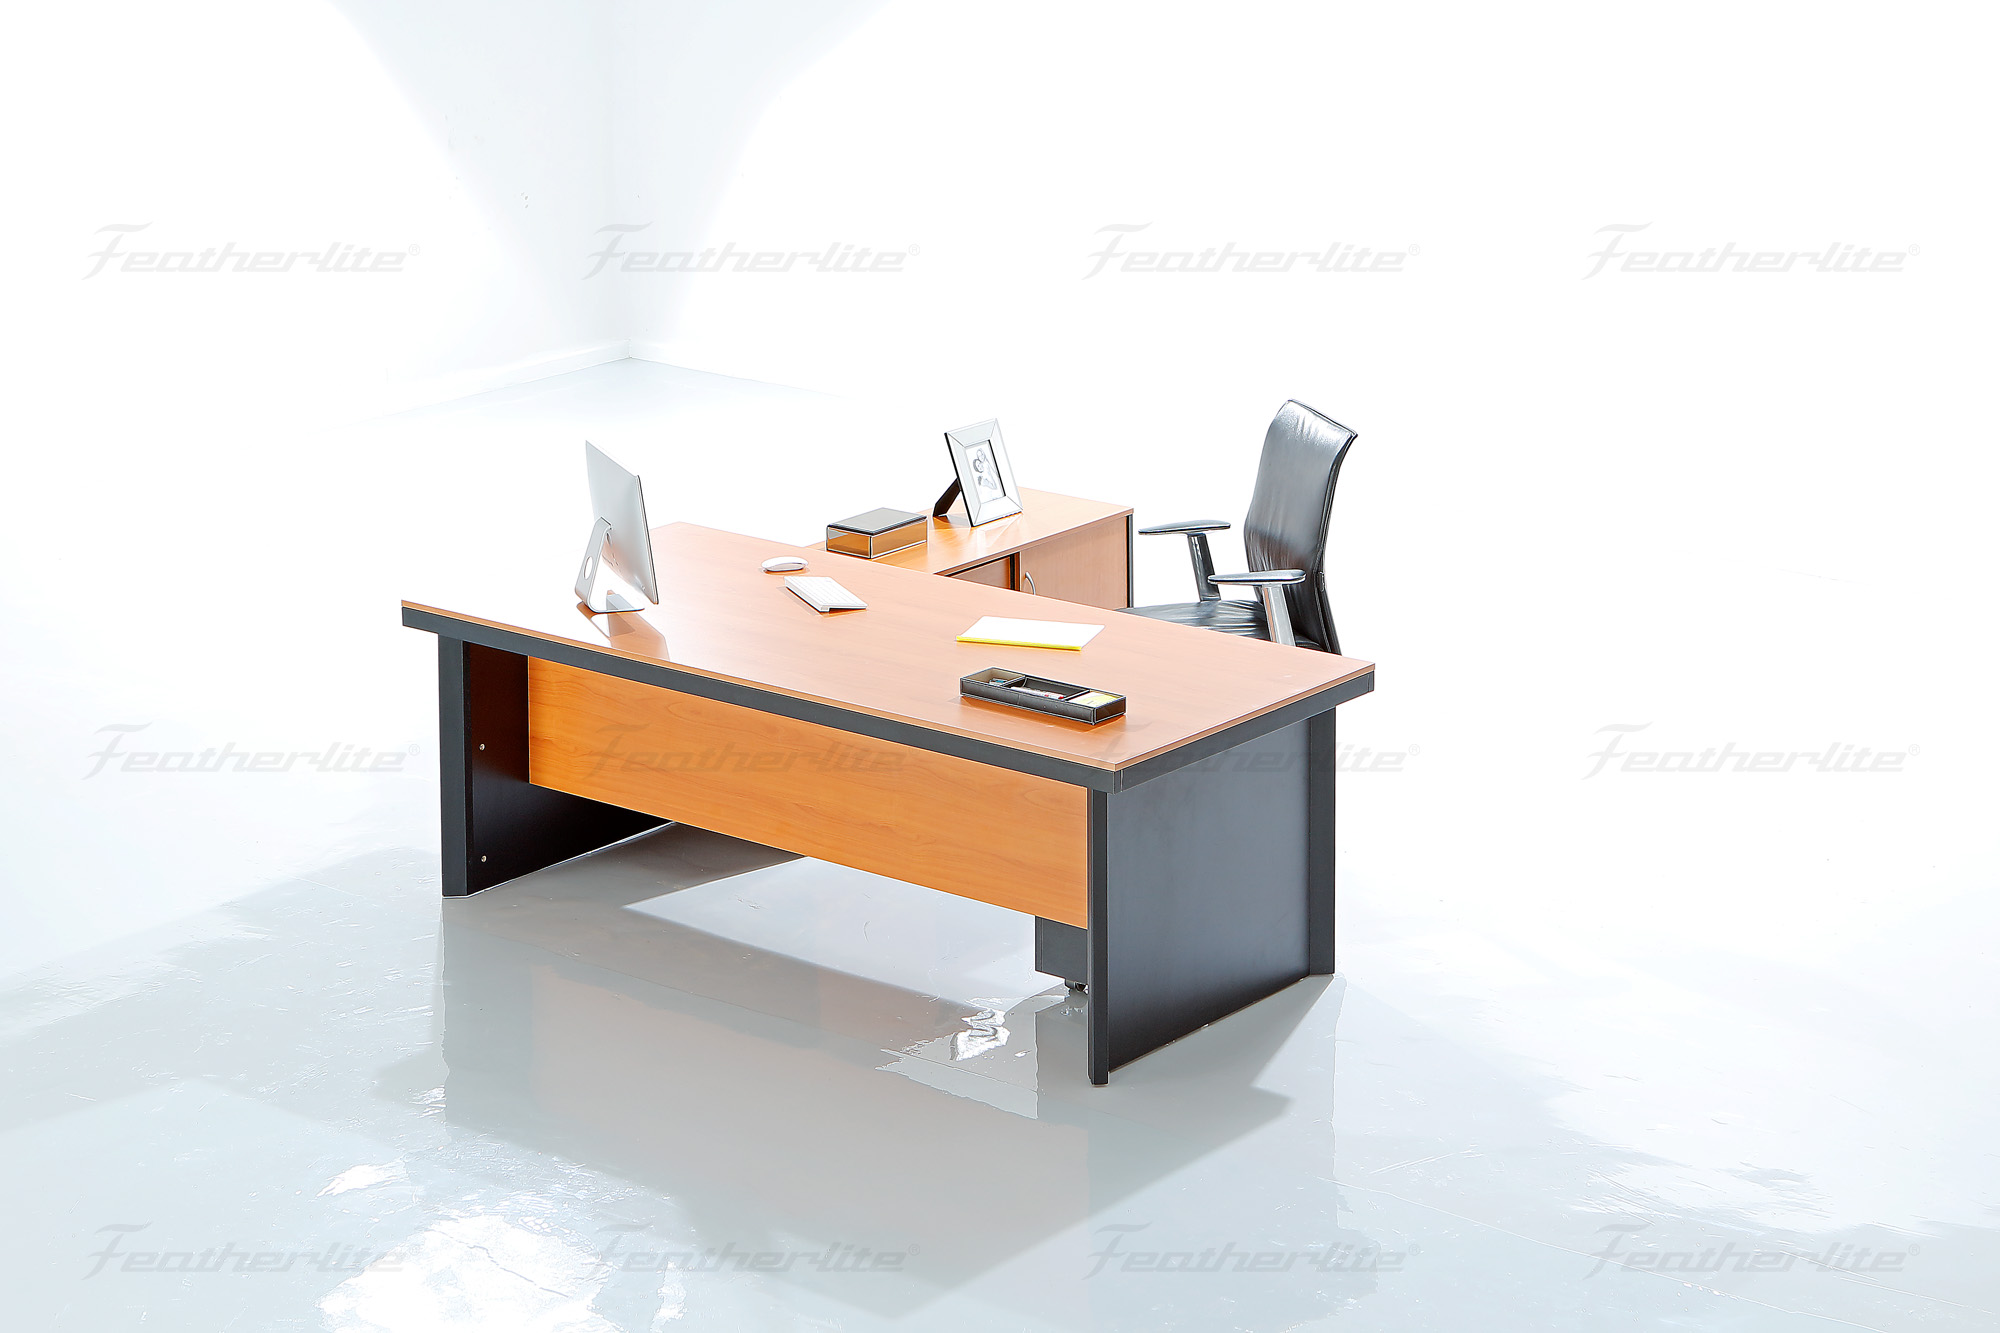 Featherlite Furniture